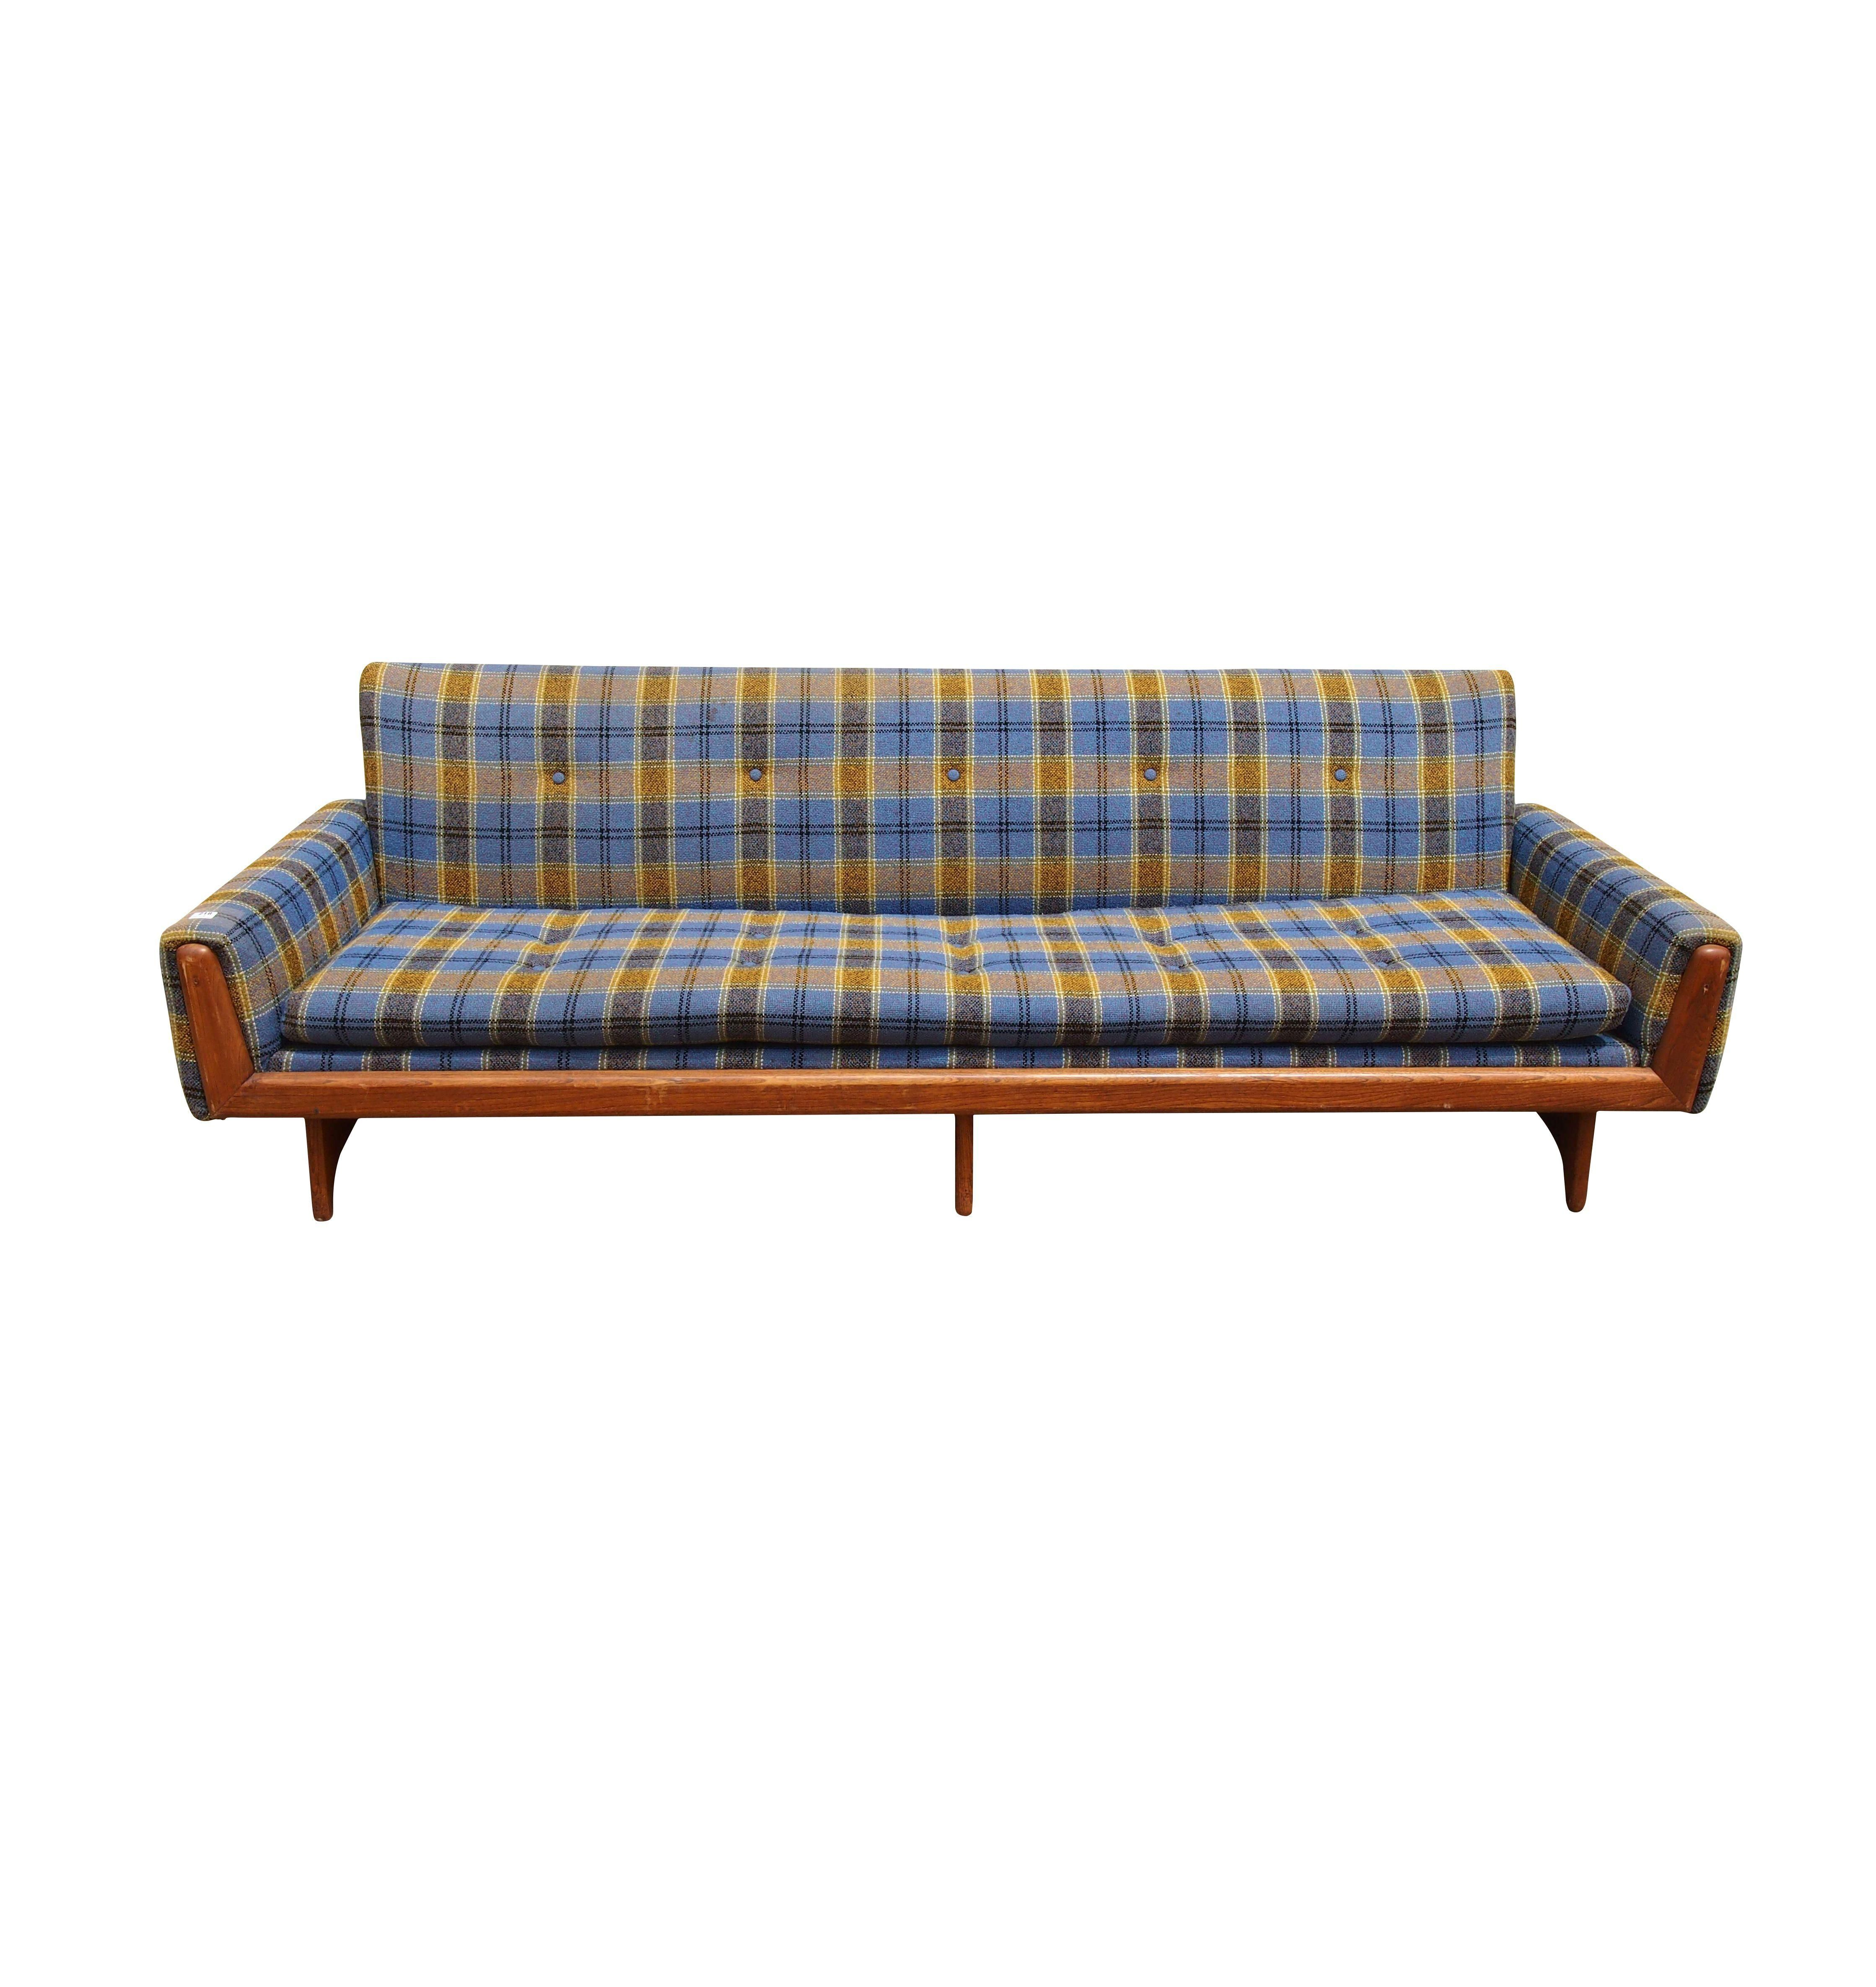 stores sofas furniture second used hand living stylish room sale for charming buy ideas design that